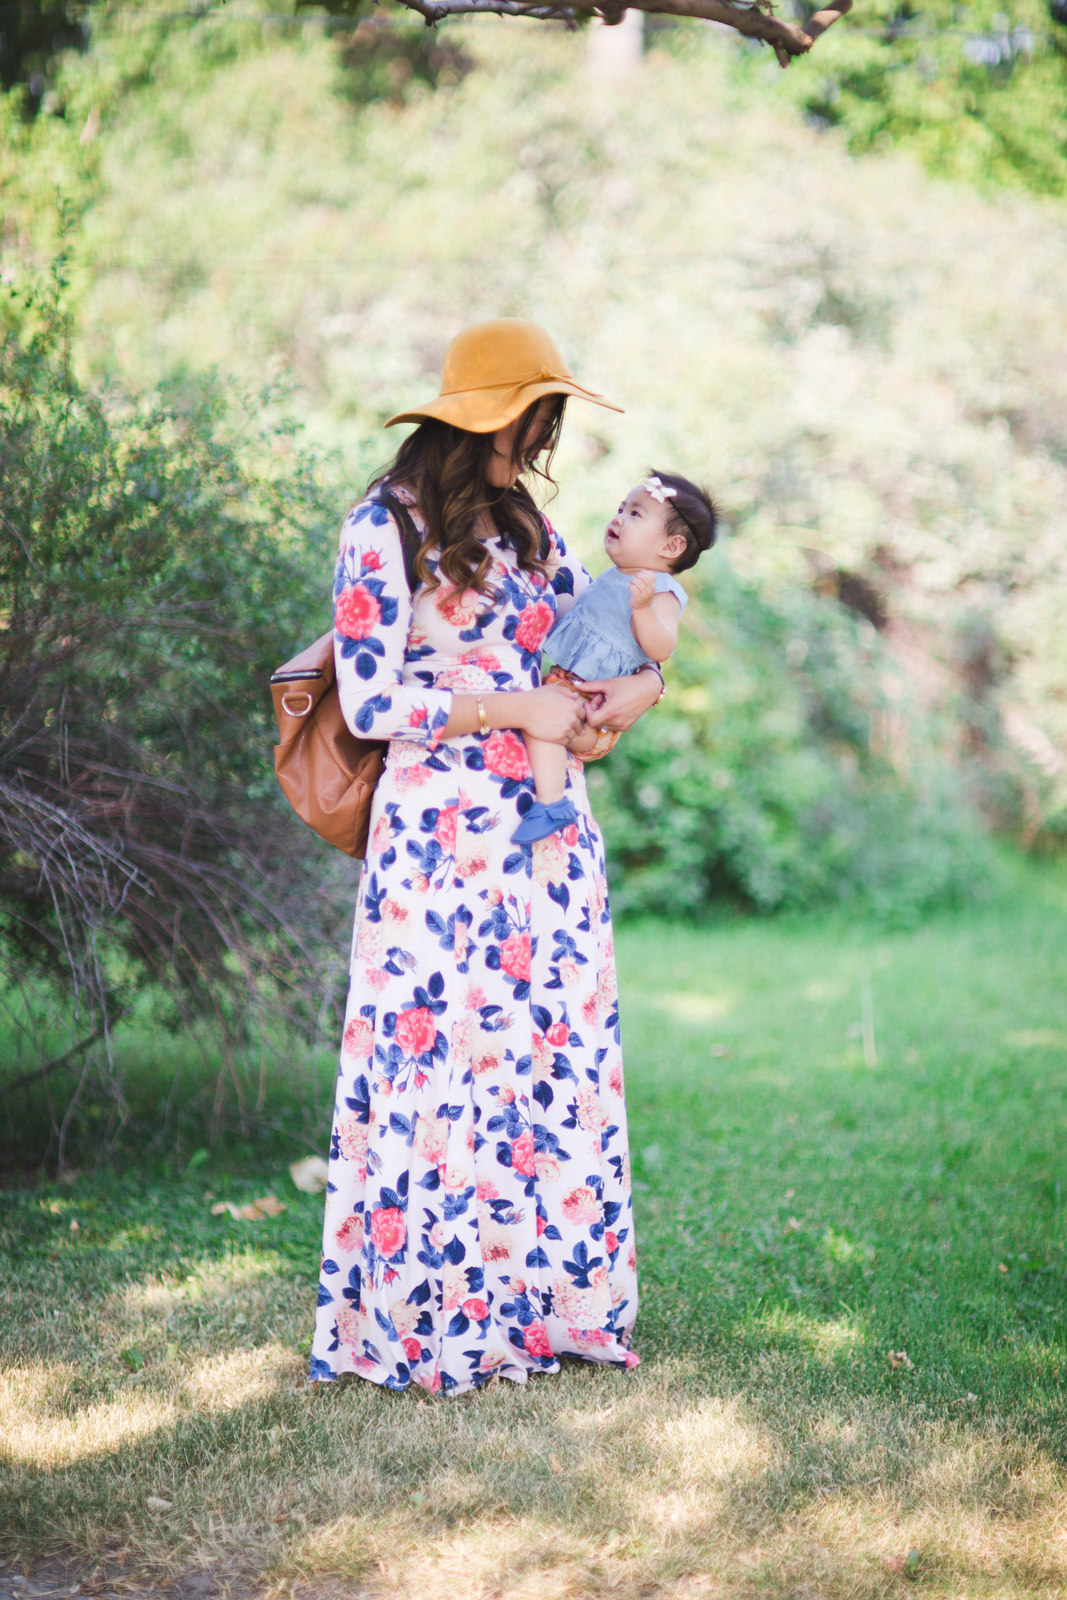 Fashionable outfits for mom and me